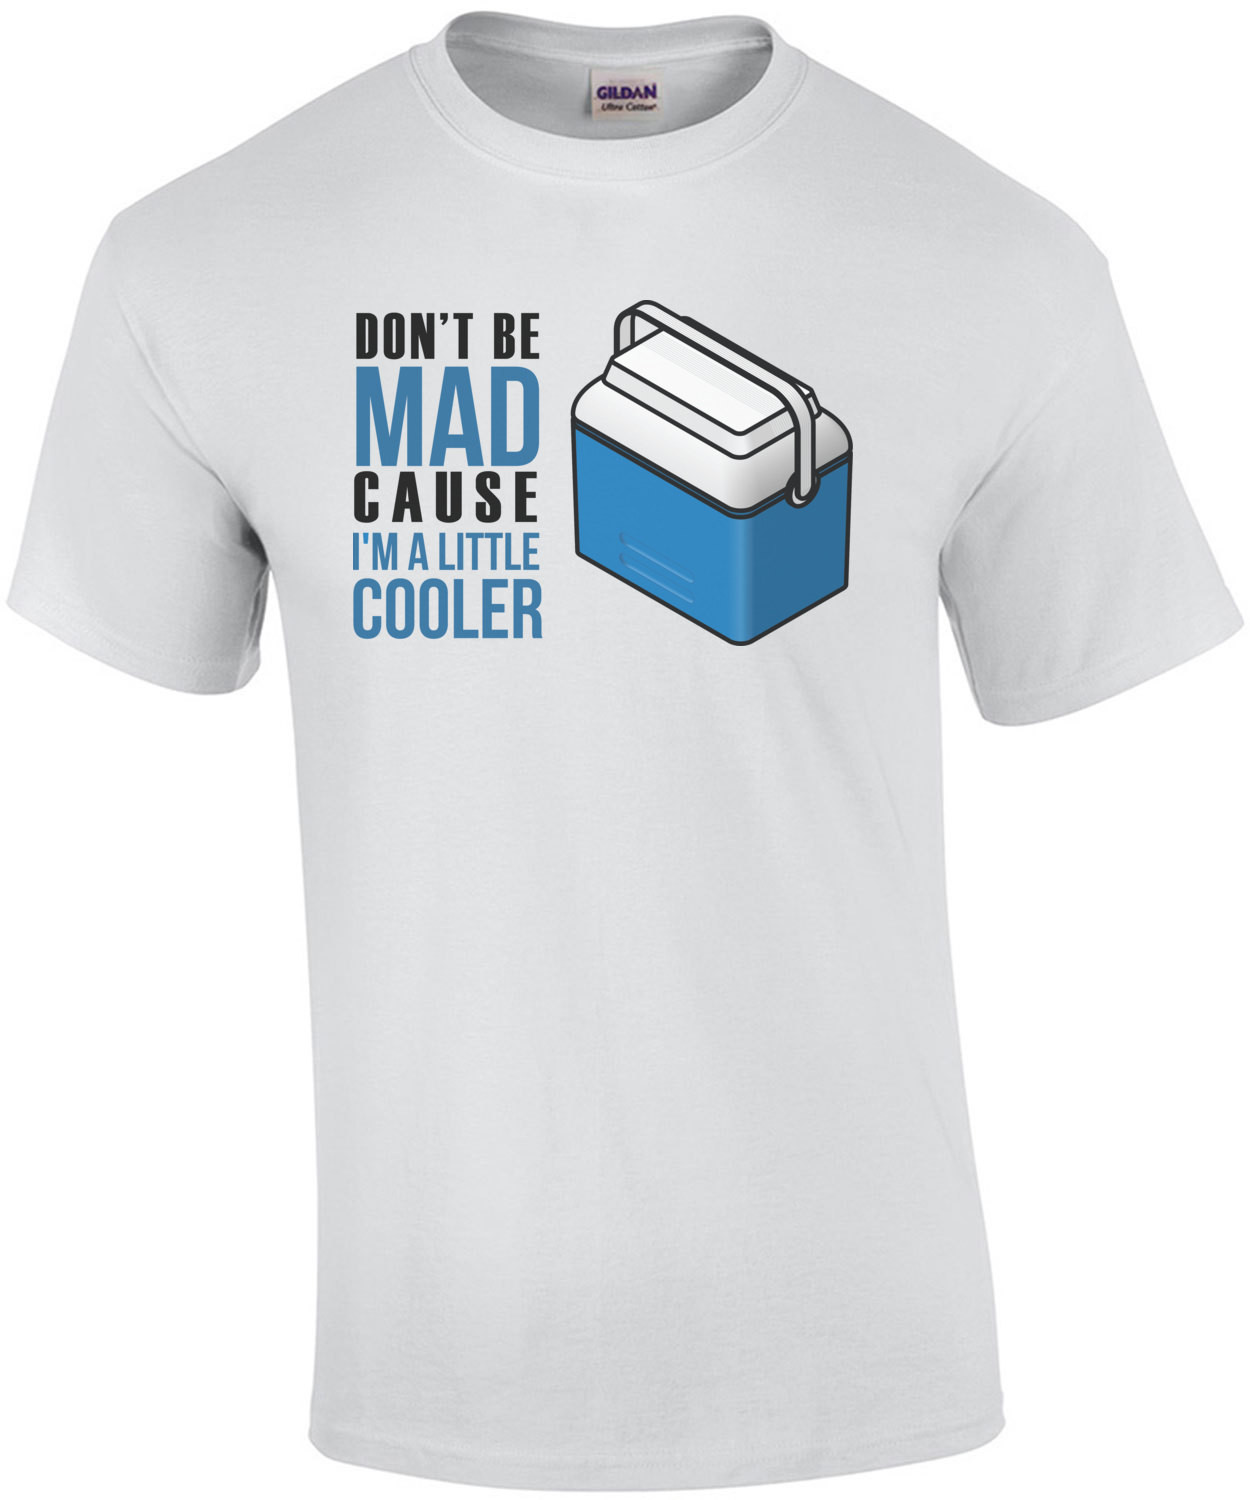 Don't be mad cause i'm a little cooler t-shirt